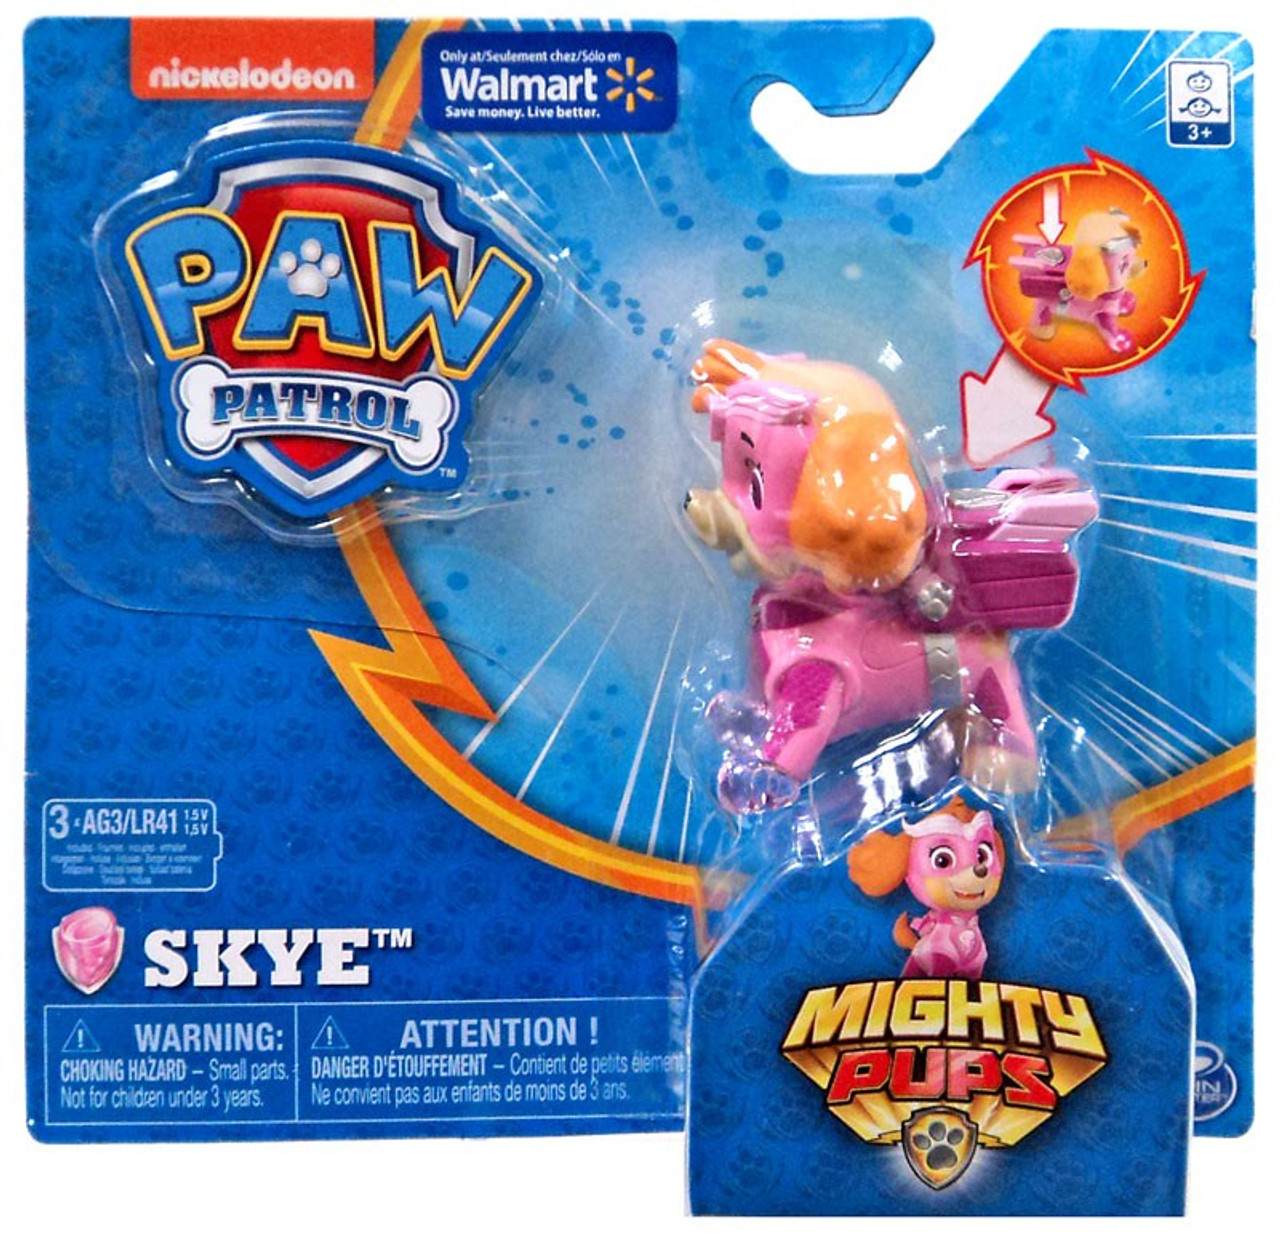 Paw Patrol Super Pups Skye Exclusive Figure Toy